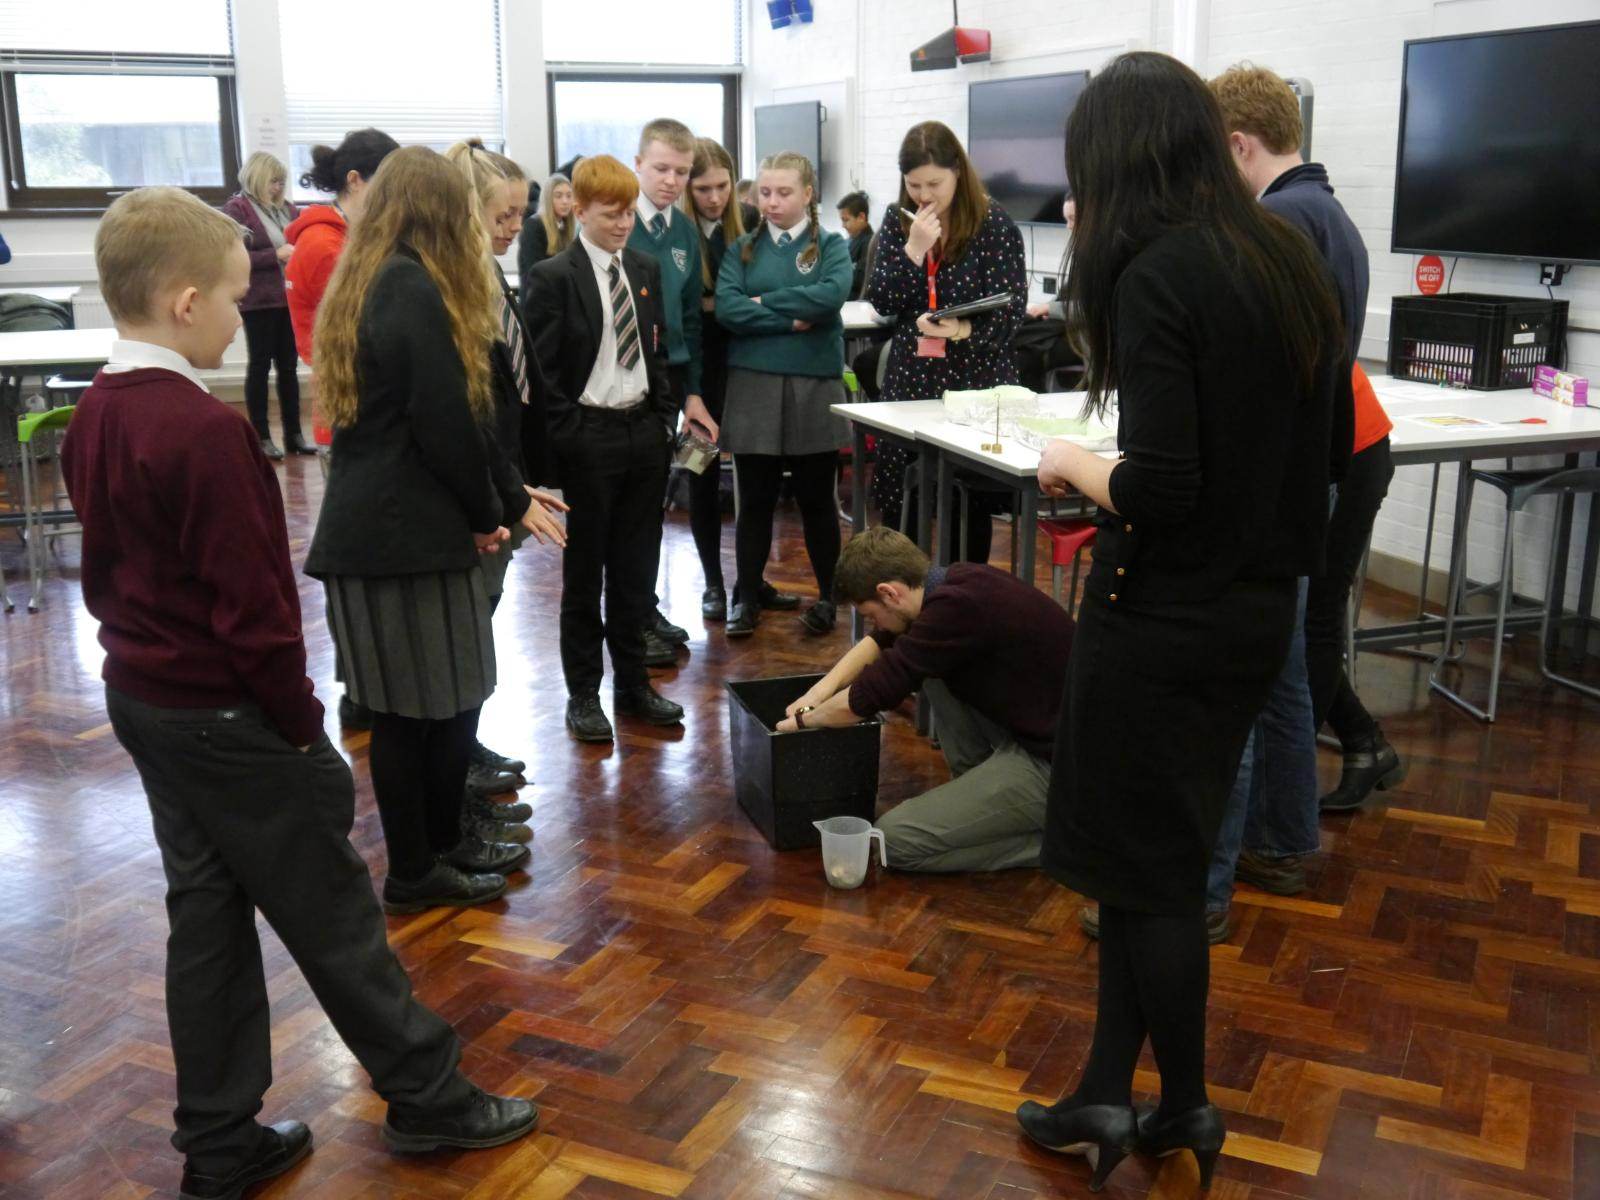 Year 10 pupils from different schools watch to see how much weight their tinfoil boats will hold in a mechanical engineering challenge.